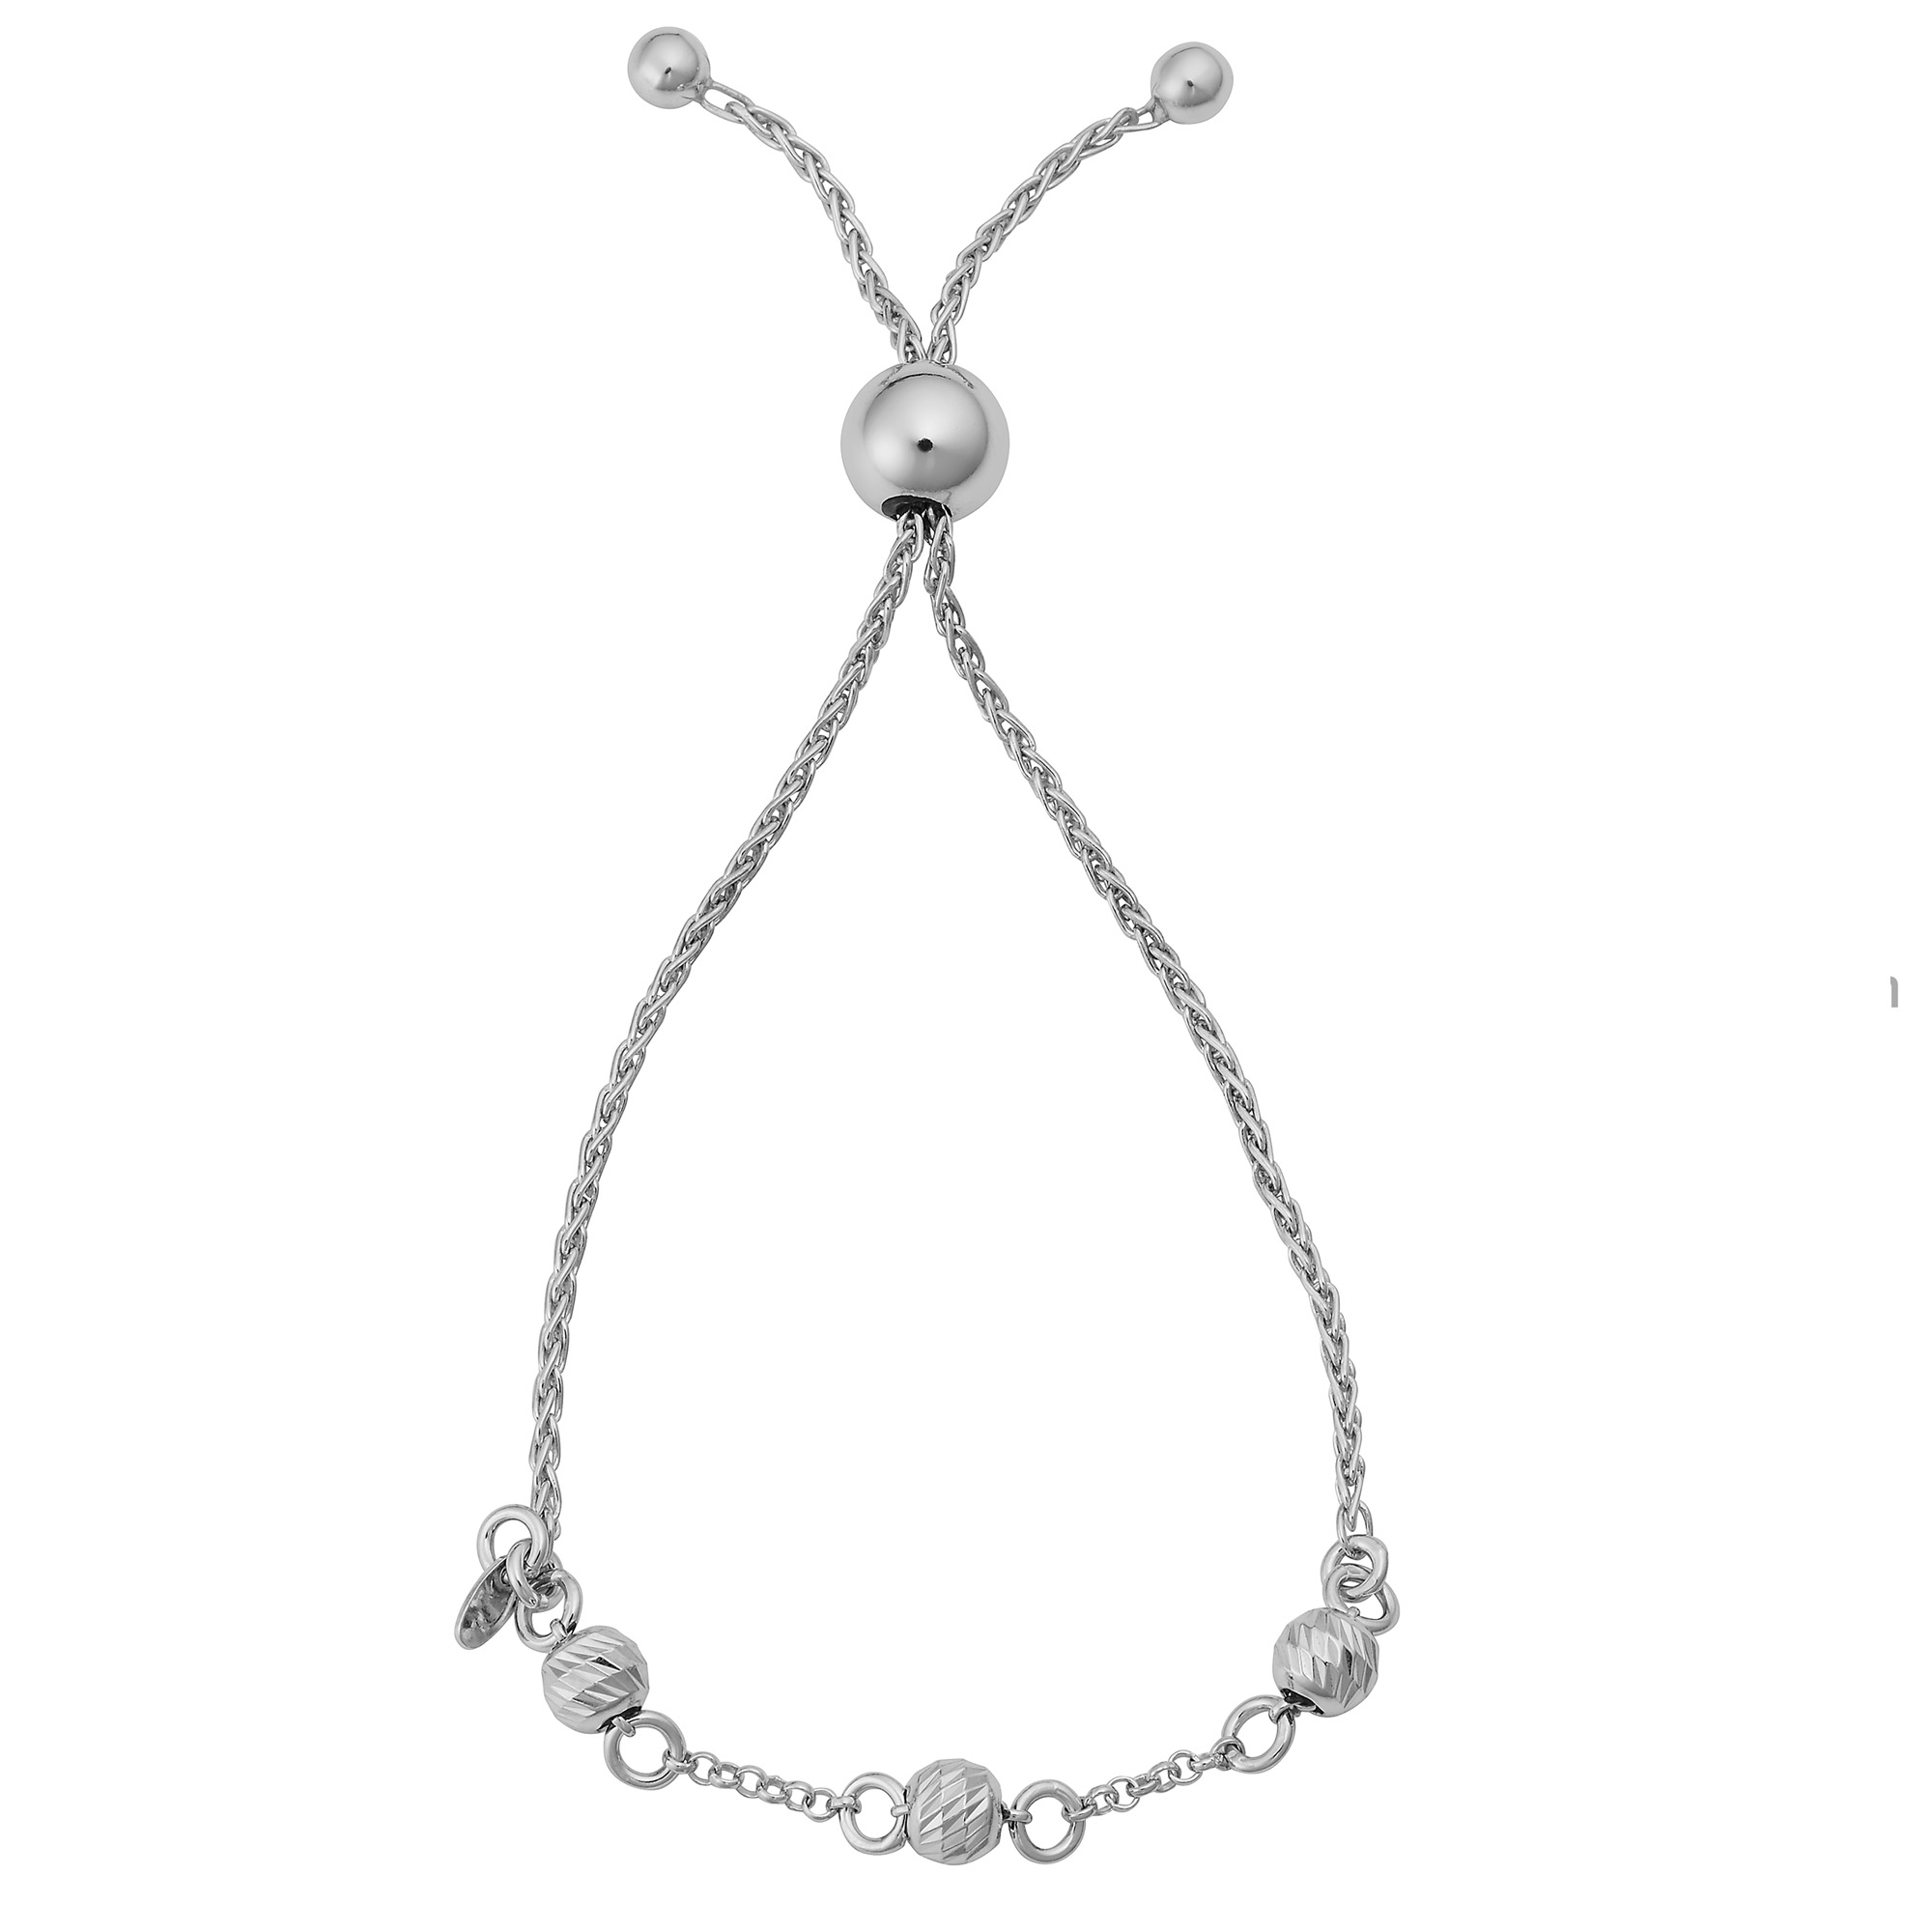 925 Sterling Silver Rhodium Finish Diamond Cut Popcorn Adjustable Slider Chain